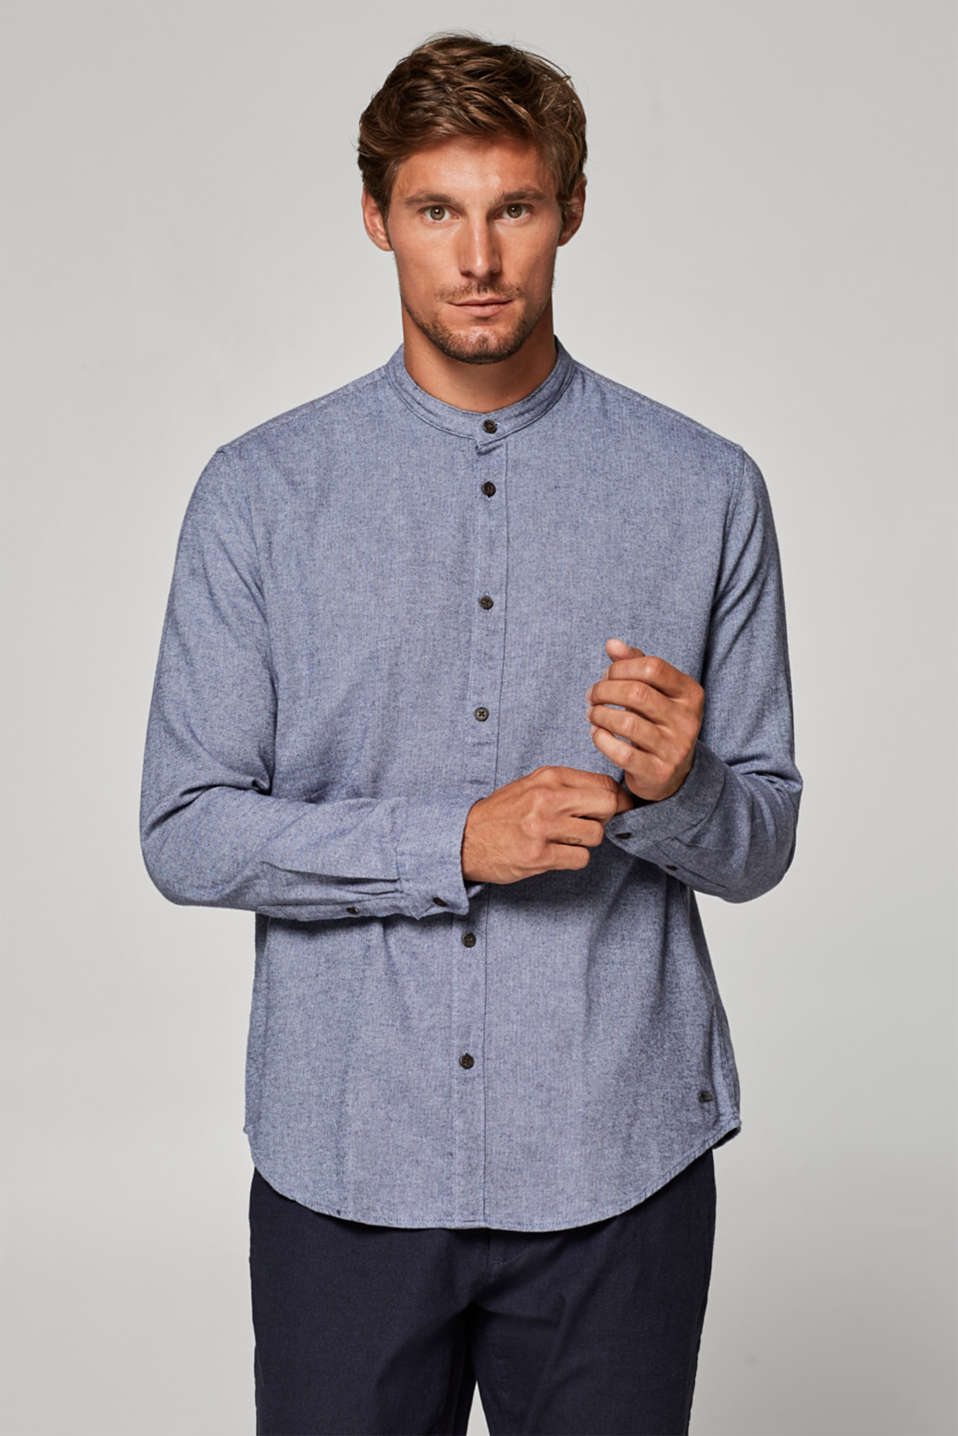 Esprit - Herringbone shirt with a band collar, 100% cotton